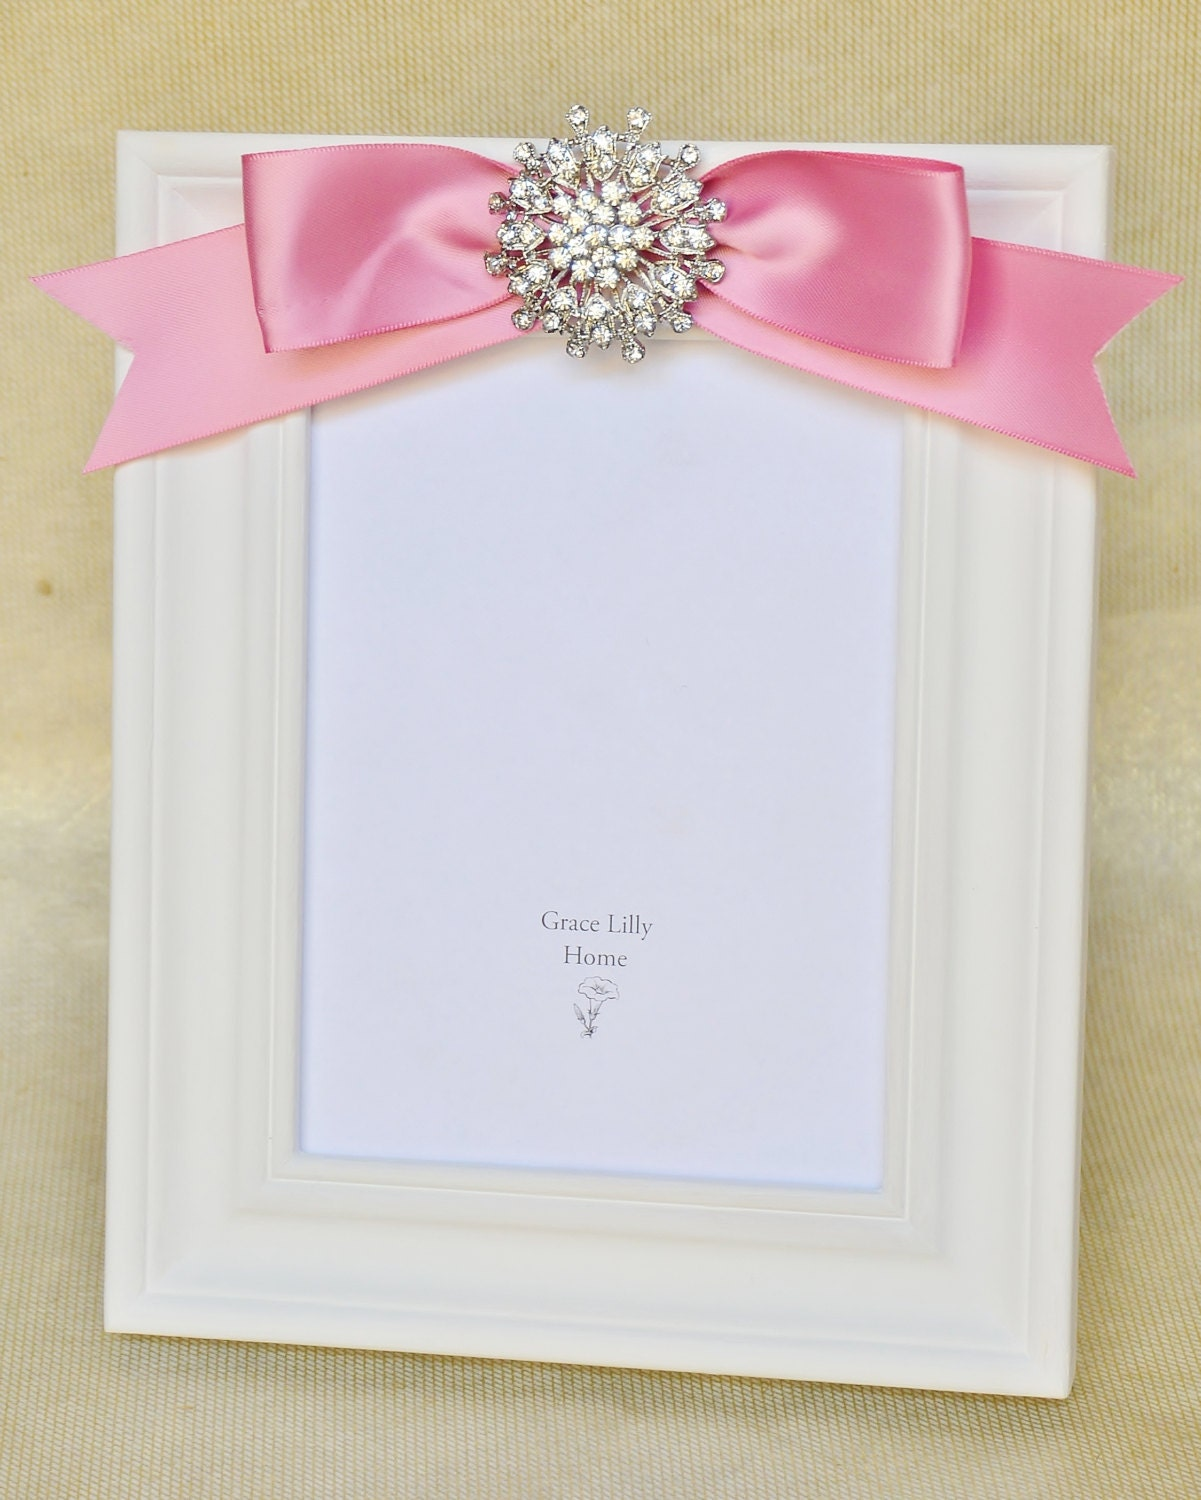 picture frame for baby shower